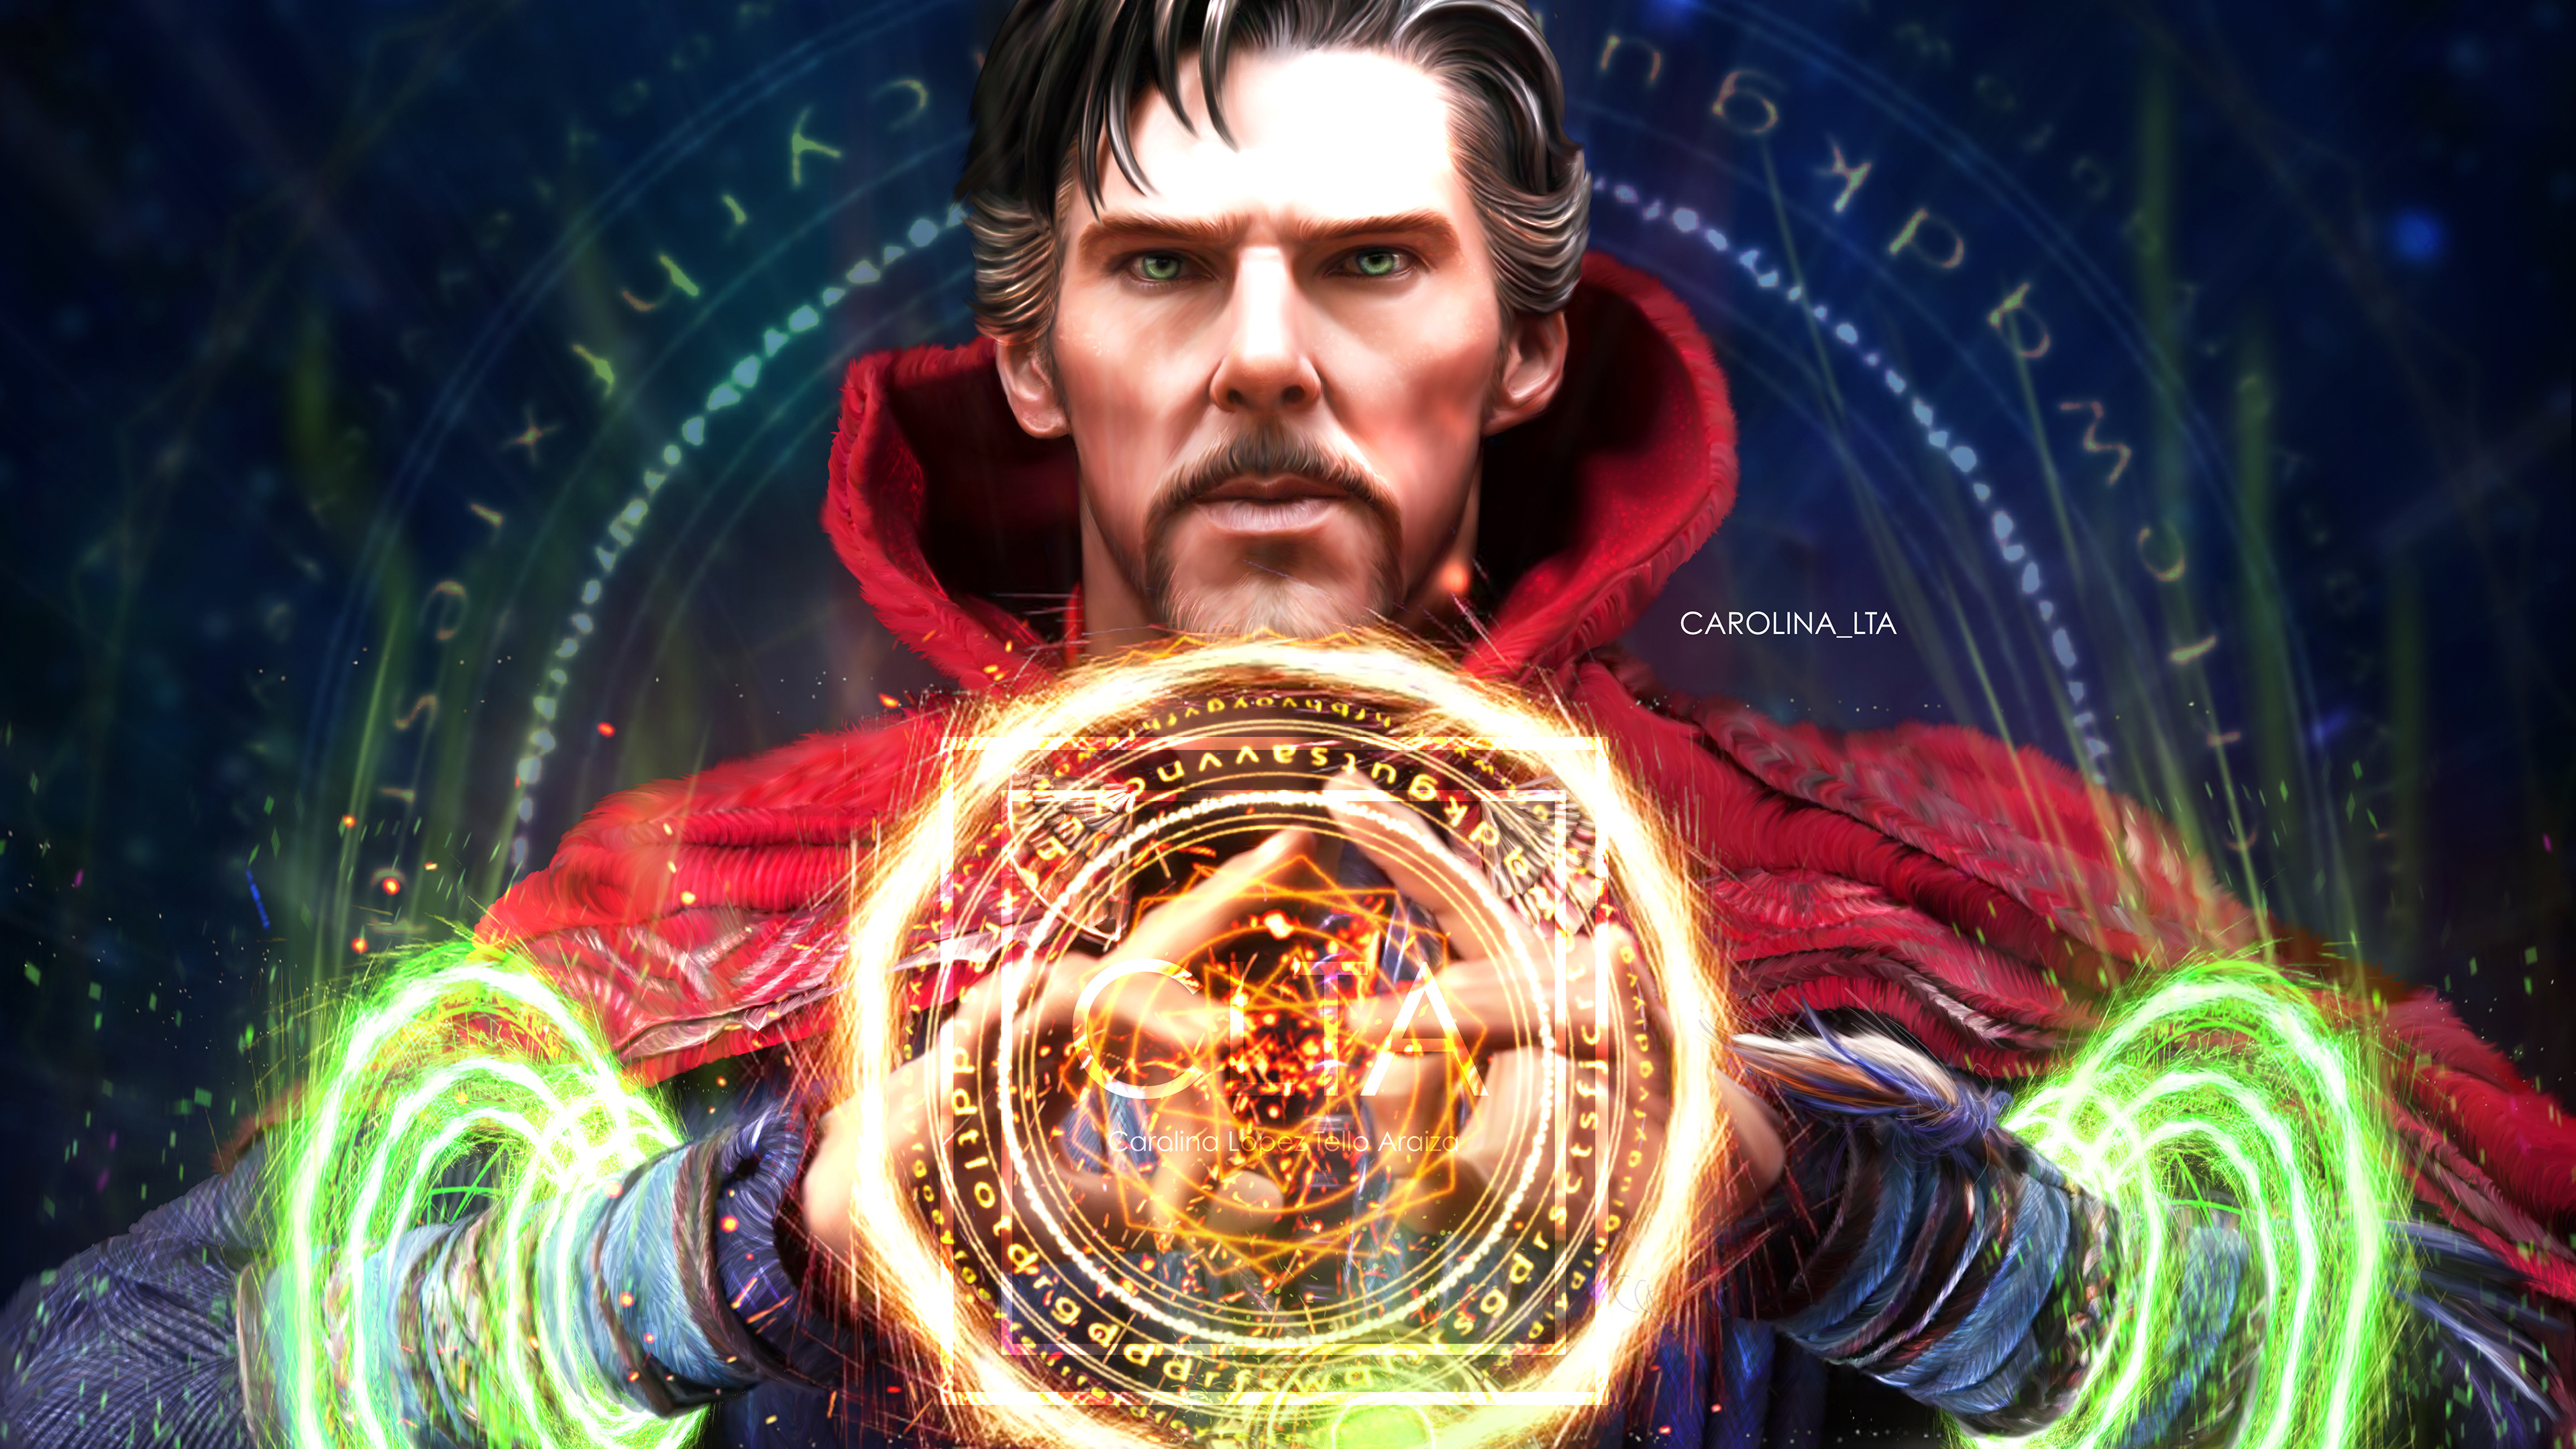 dr strange 4k 1547506774 - Dr Strange 4k - superheroes wallpapers, illustration wallpapers, doctor strange wallpapers, digital art wallpapers, behance wallpapers, artwork wallpapers, artist wallpapers, 4k-wallpapers